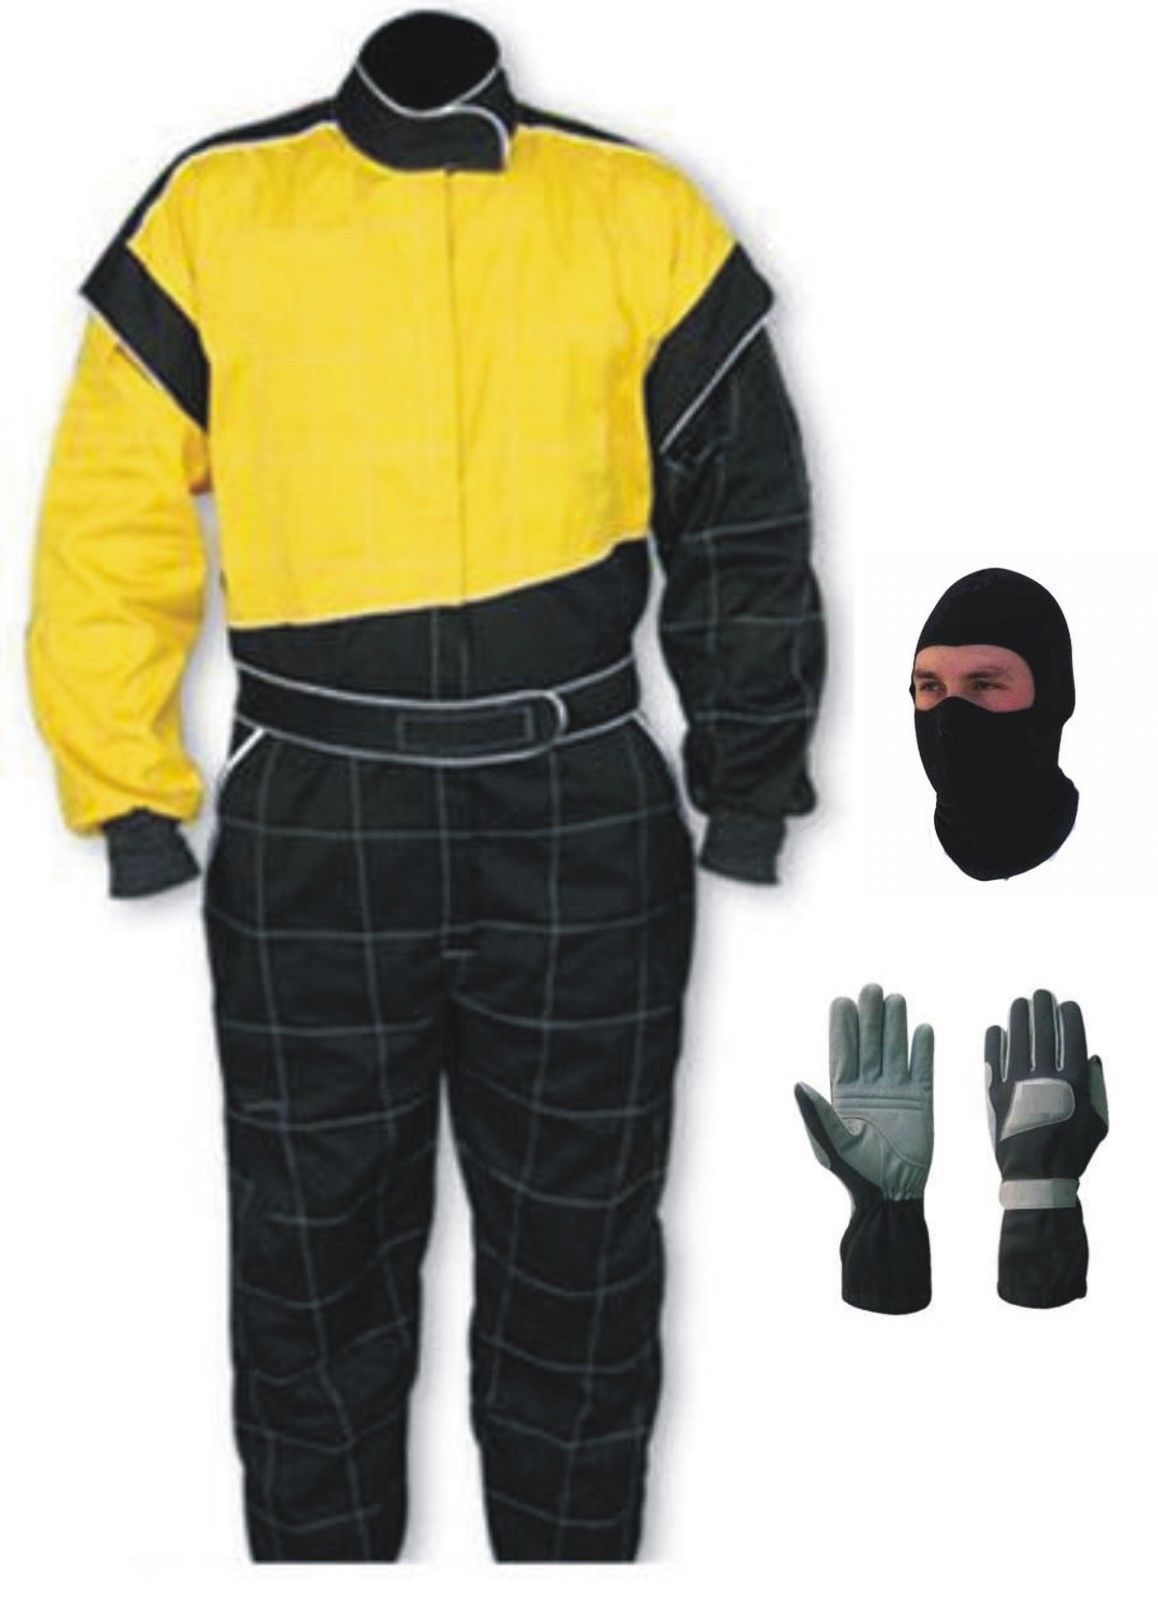 Latest Design Go Kart Race Suit Pack With Gloves (Free gifts included)